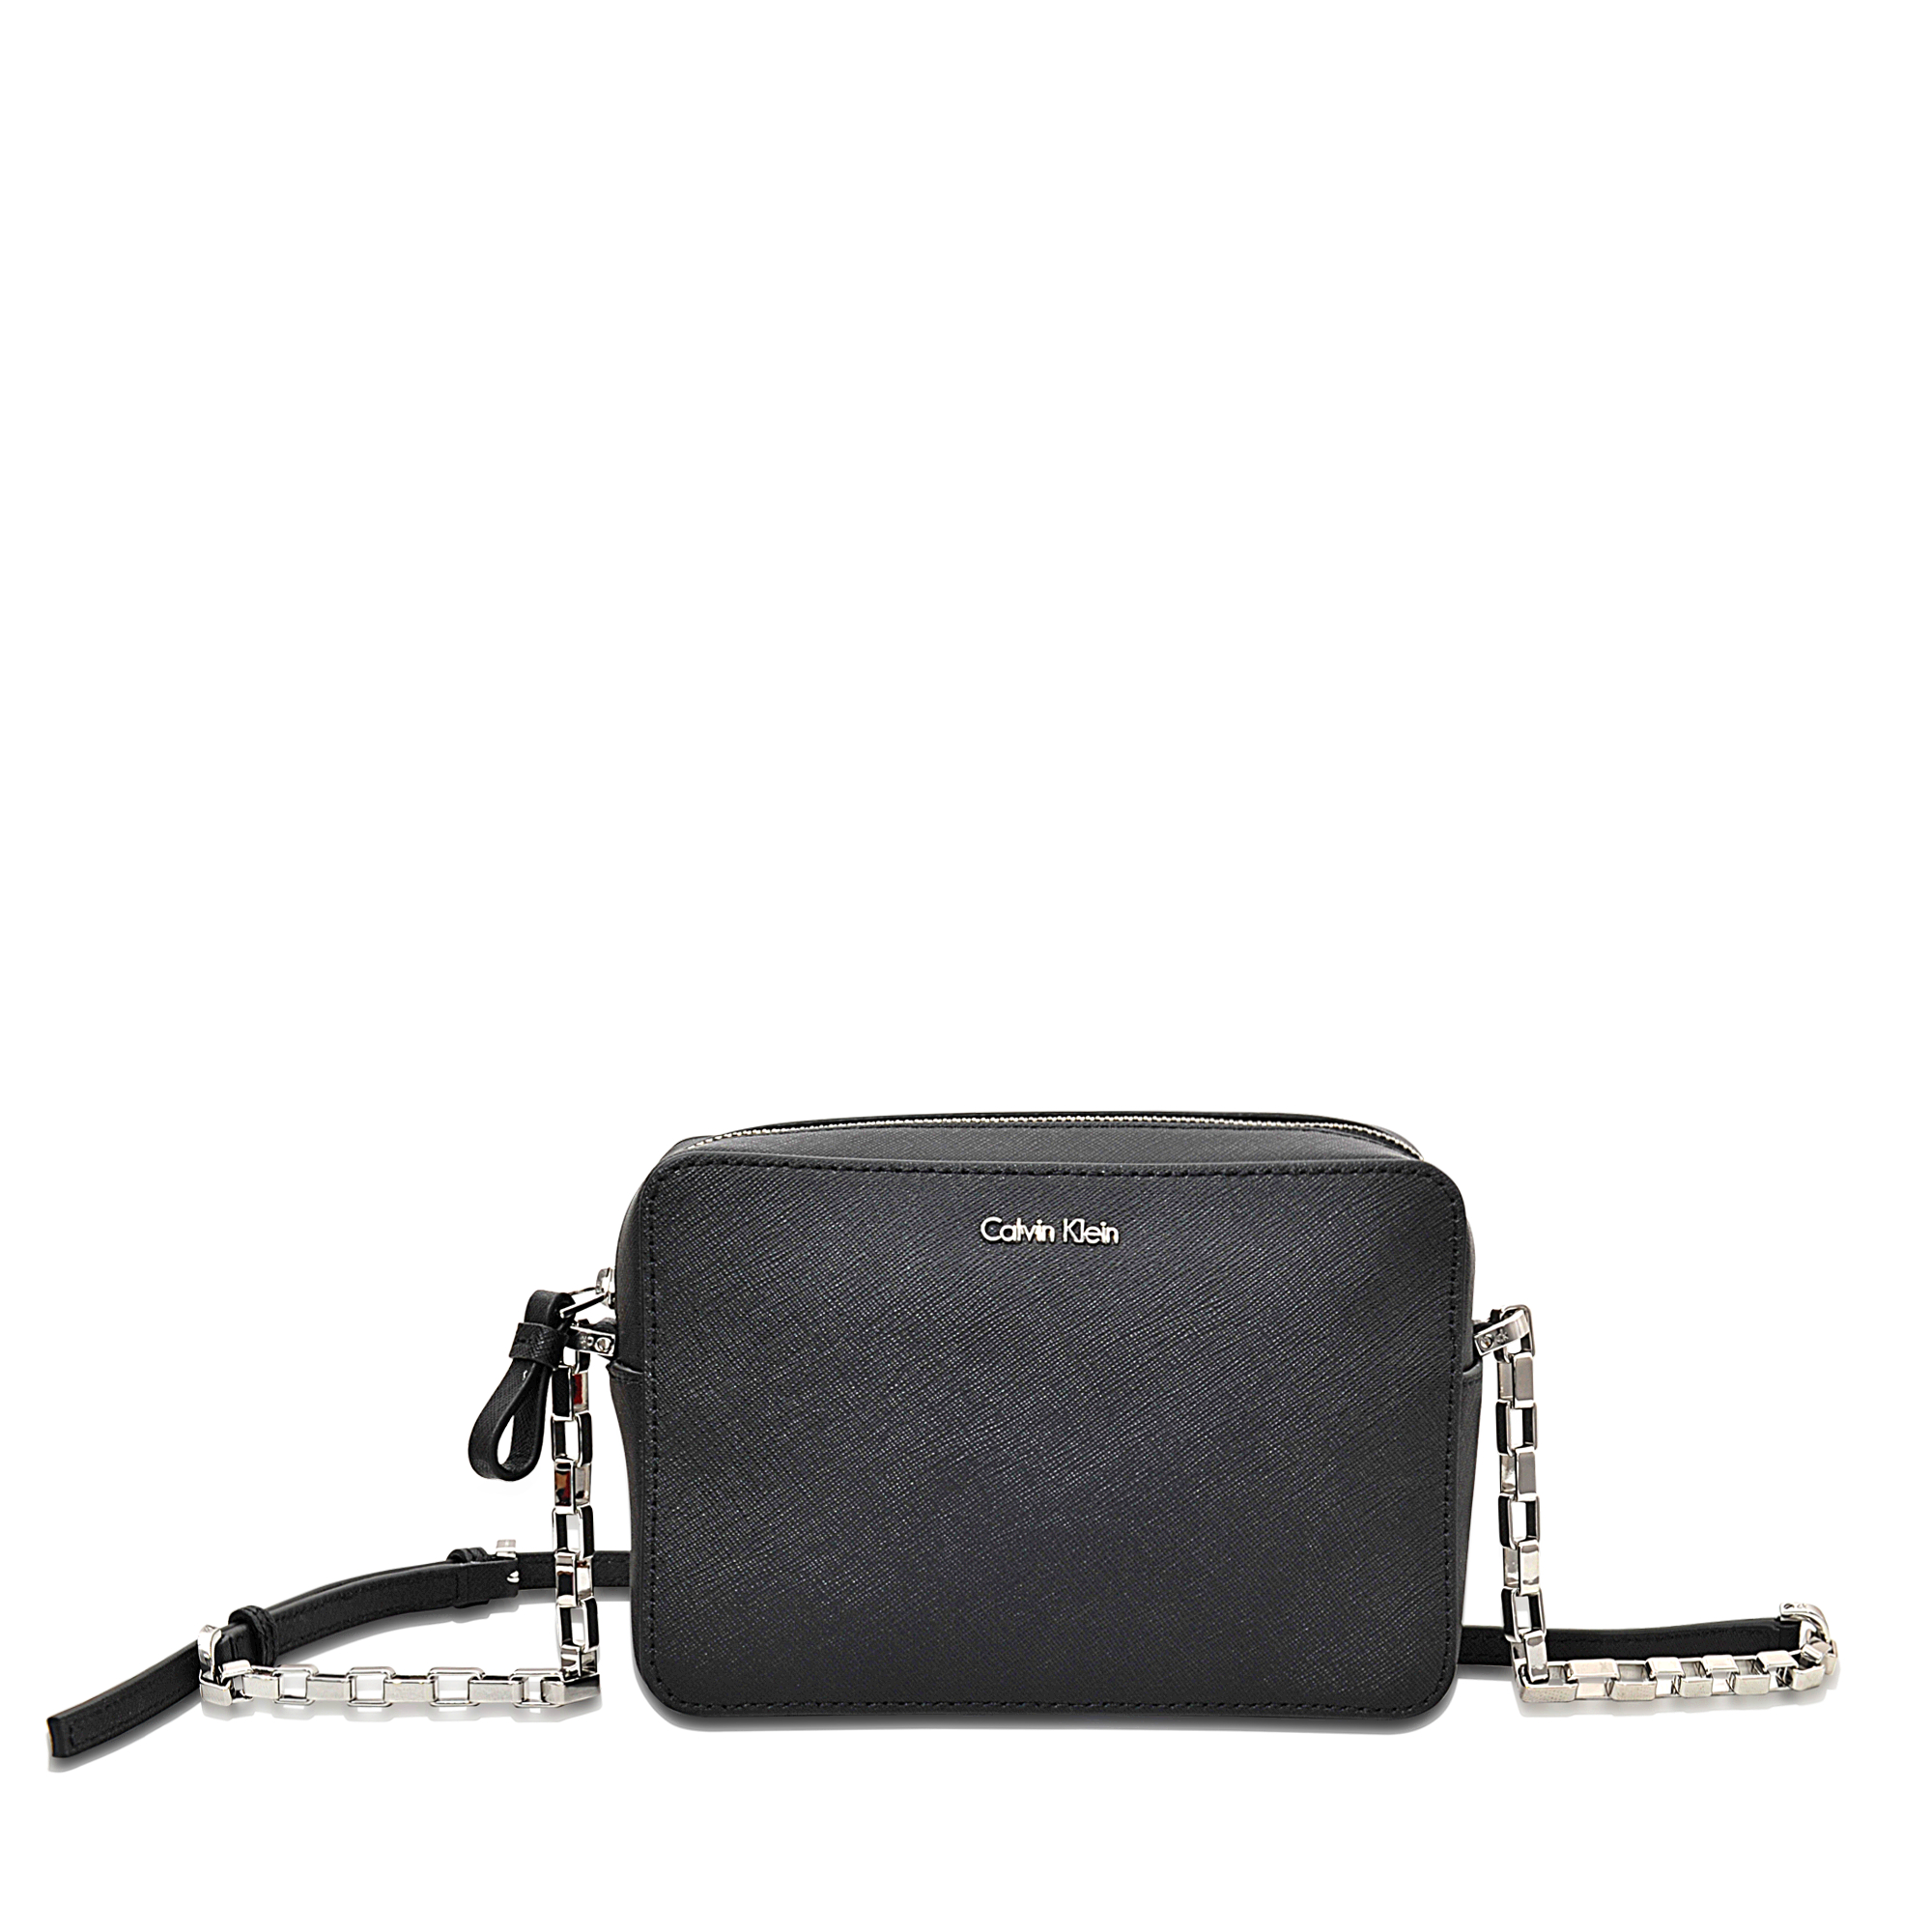 Calvin Klein Sofie Mini Crossbody Bag in Black - Lyst fd0b39679514b